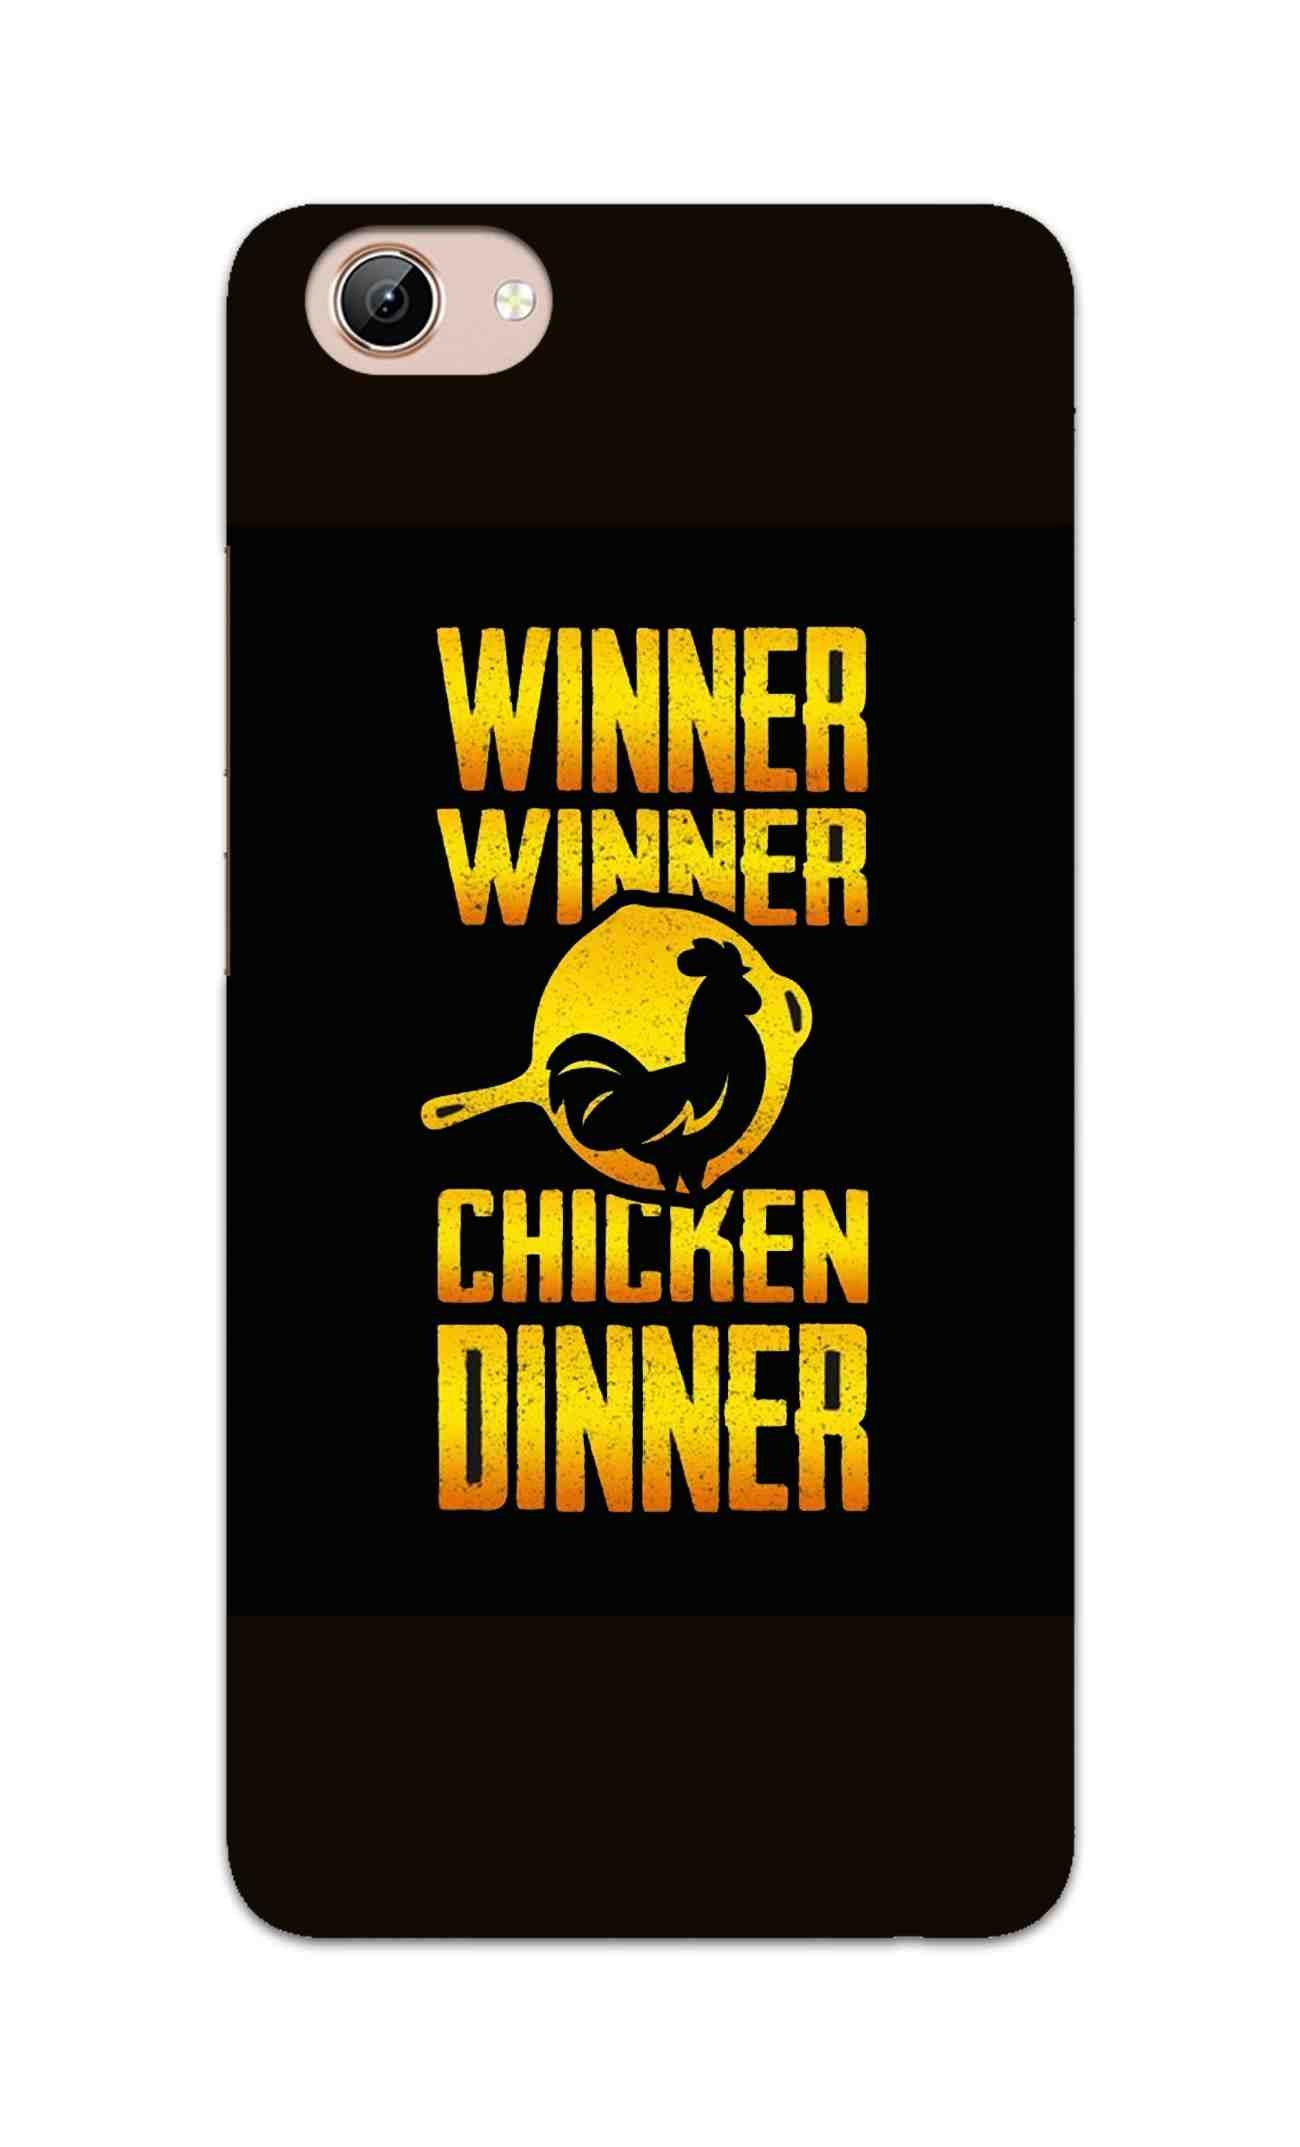 Chicken Dinner Pan For Winner Typography Vivo Y71 Mobile Cover Case - MADANYU